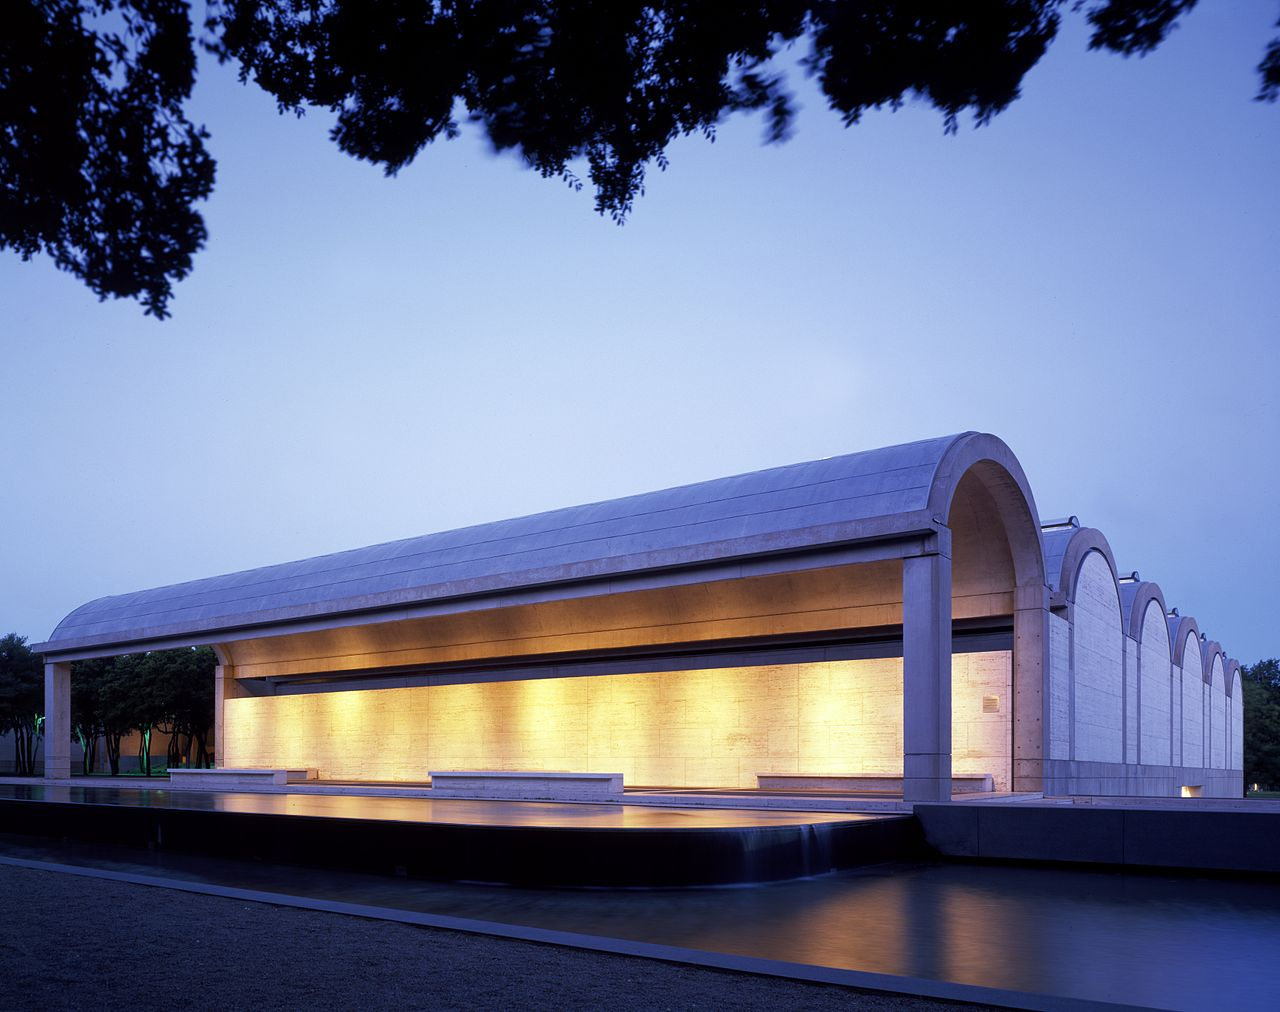 Top 7 Designs by Modernist Architect Louis Kahn by Laurel Fay ...